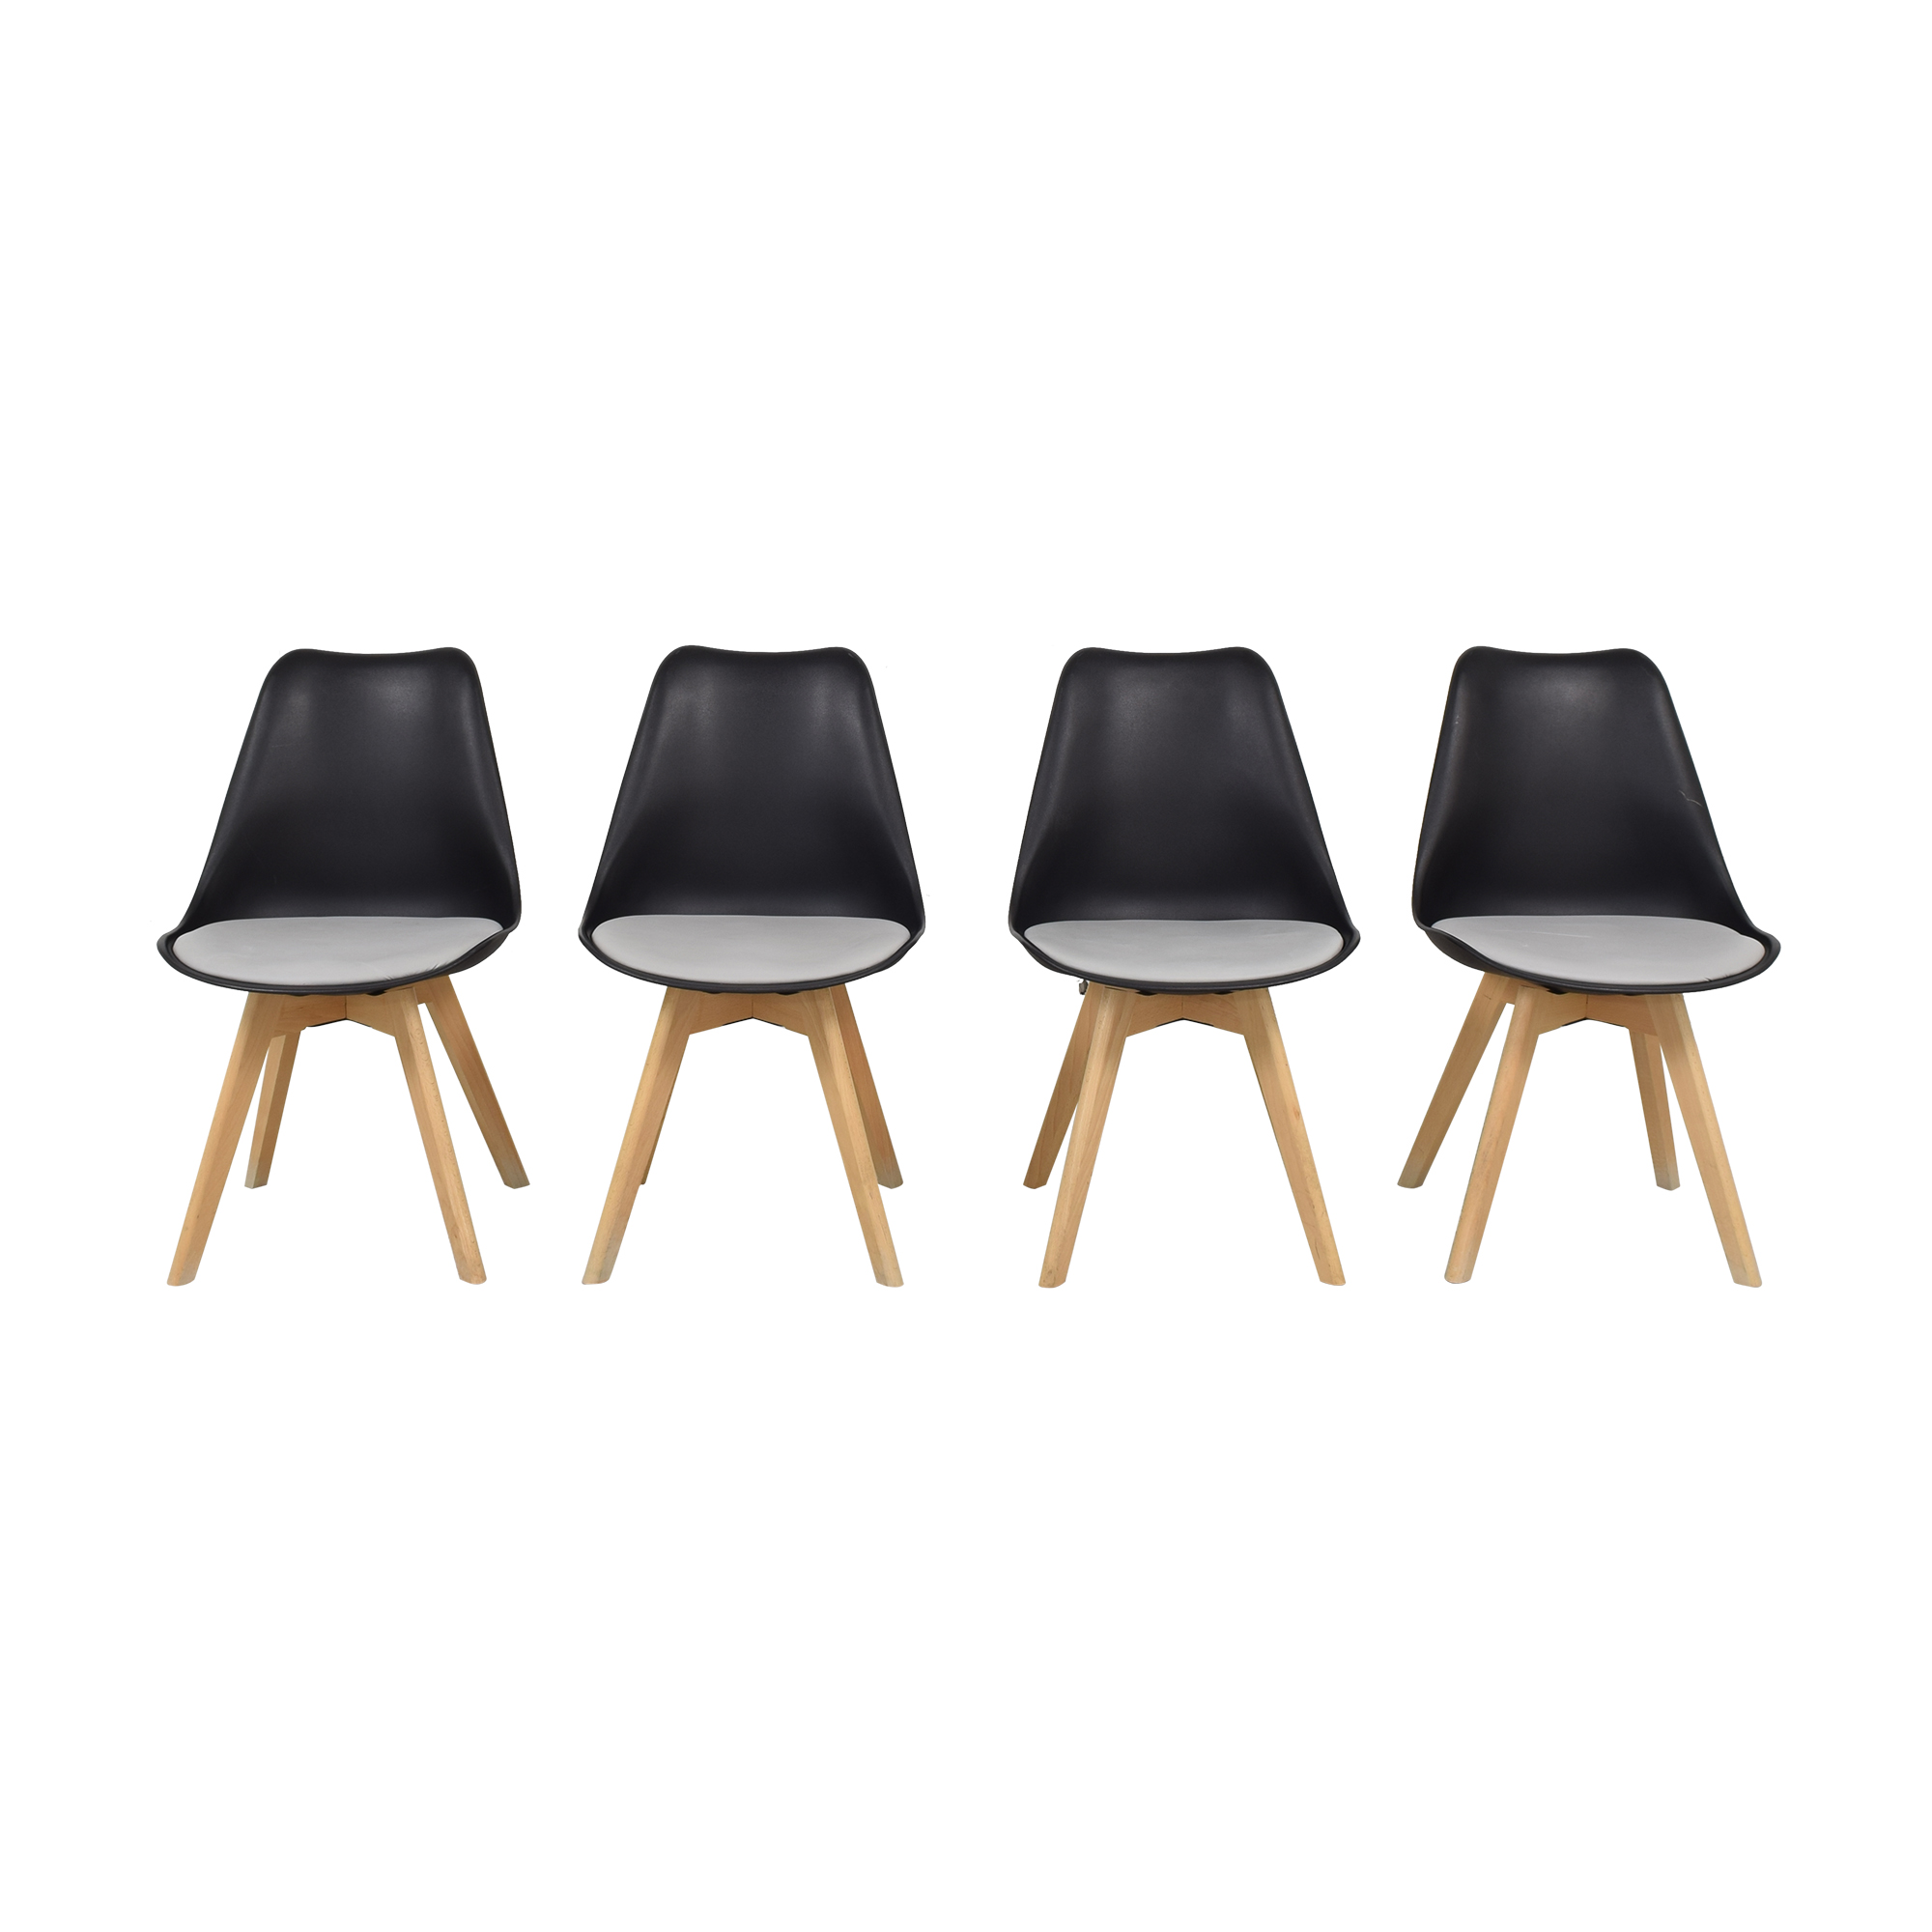 Molded Plastic Dining Chairs ma